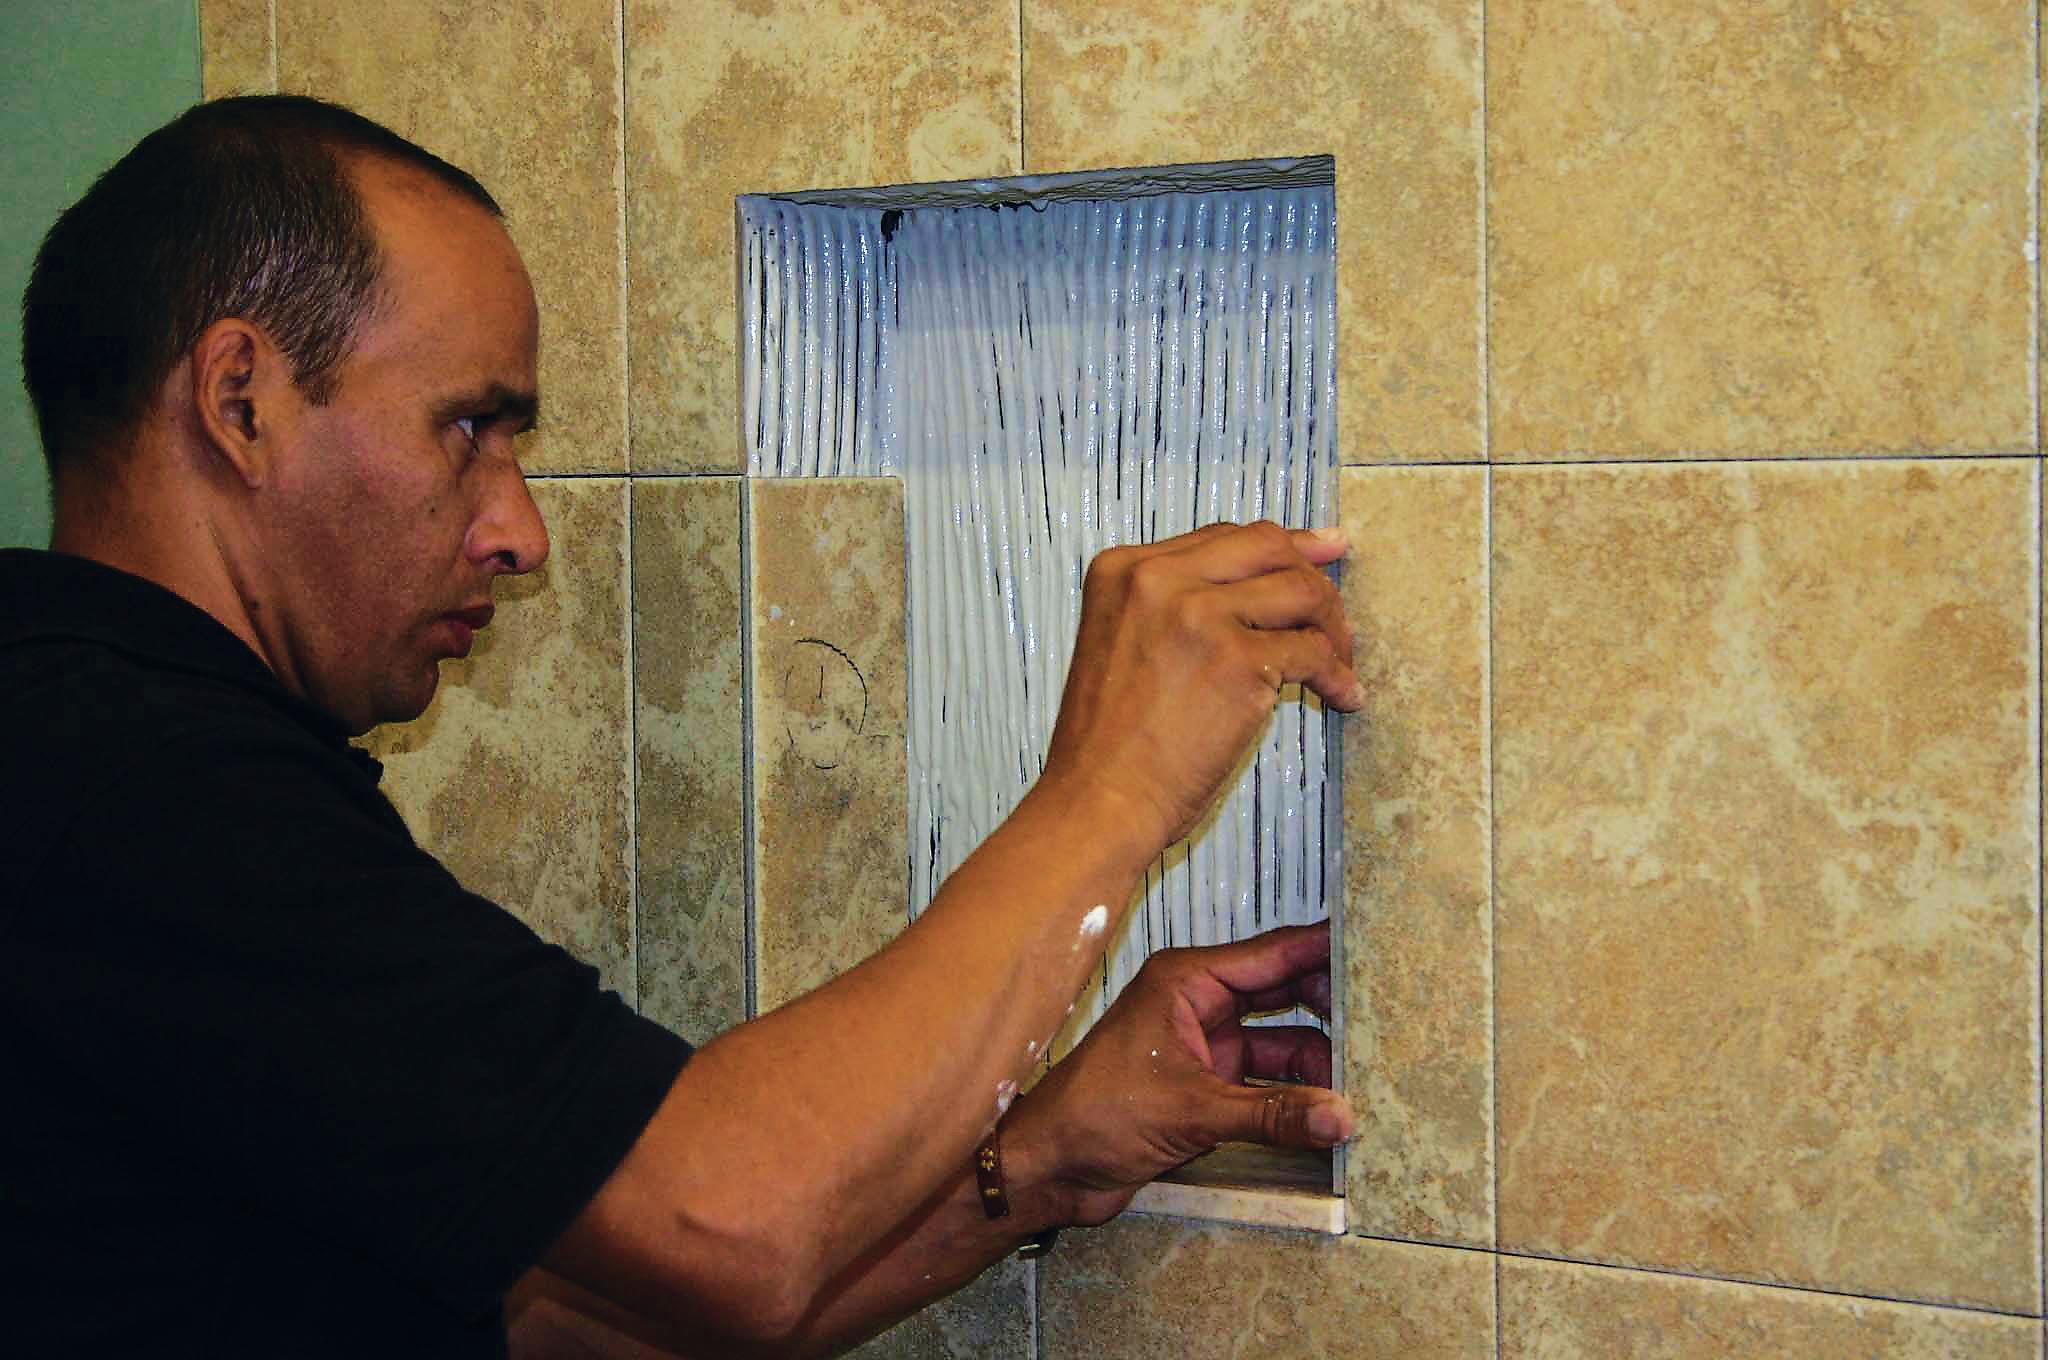 Tile Redi Niche Pre Formed Niches Remodeling Shower Bath Mold Walls Installation